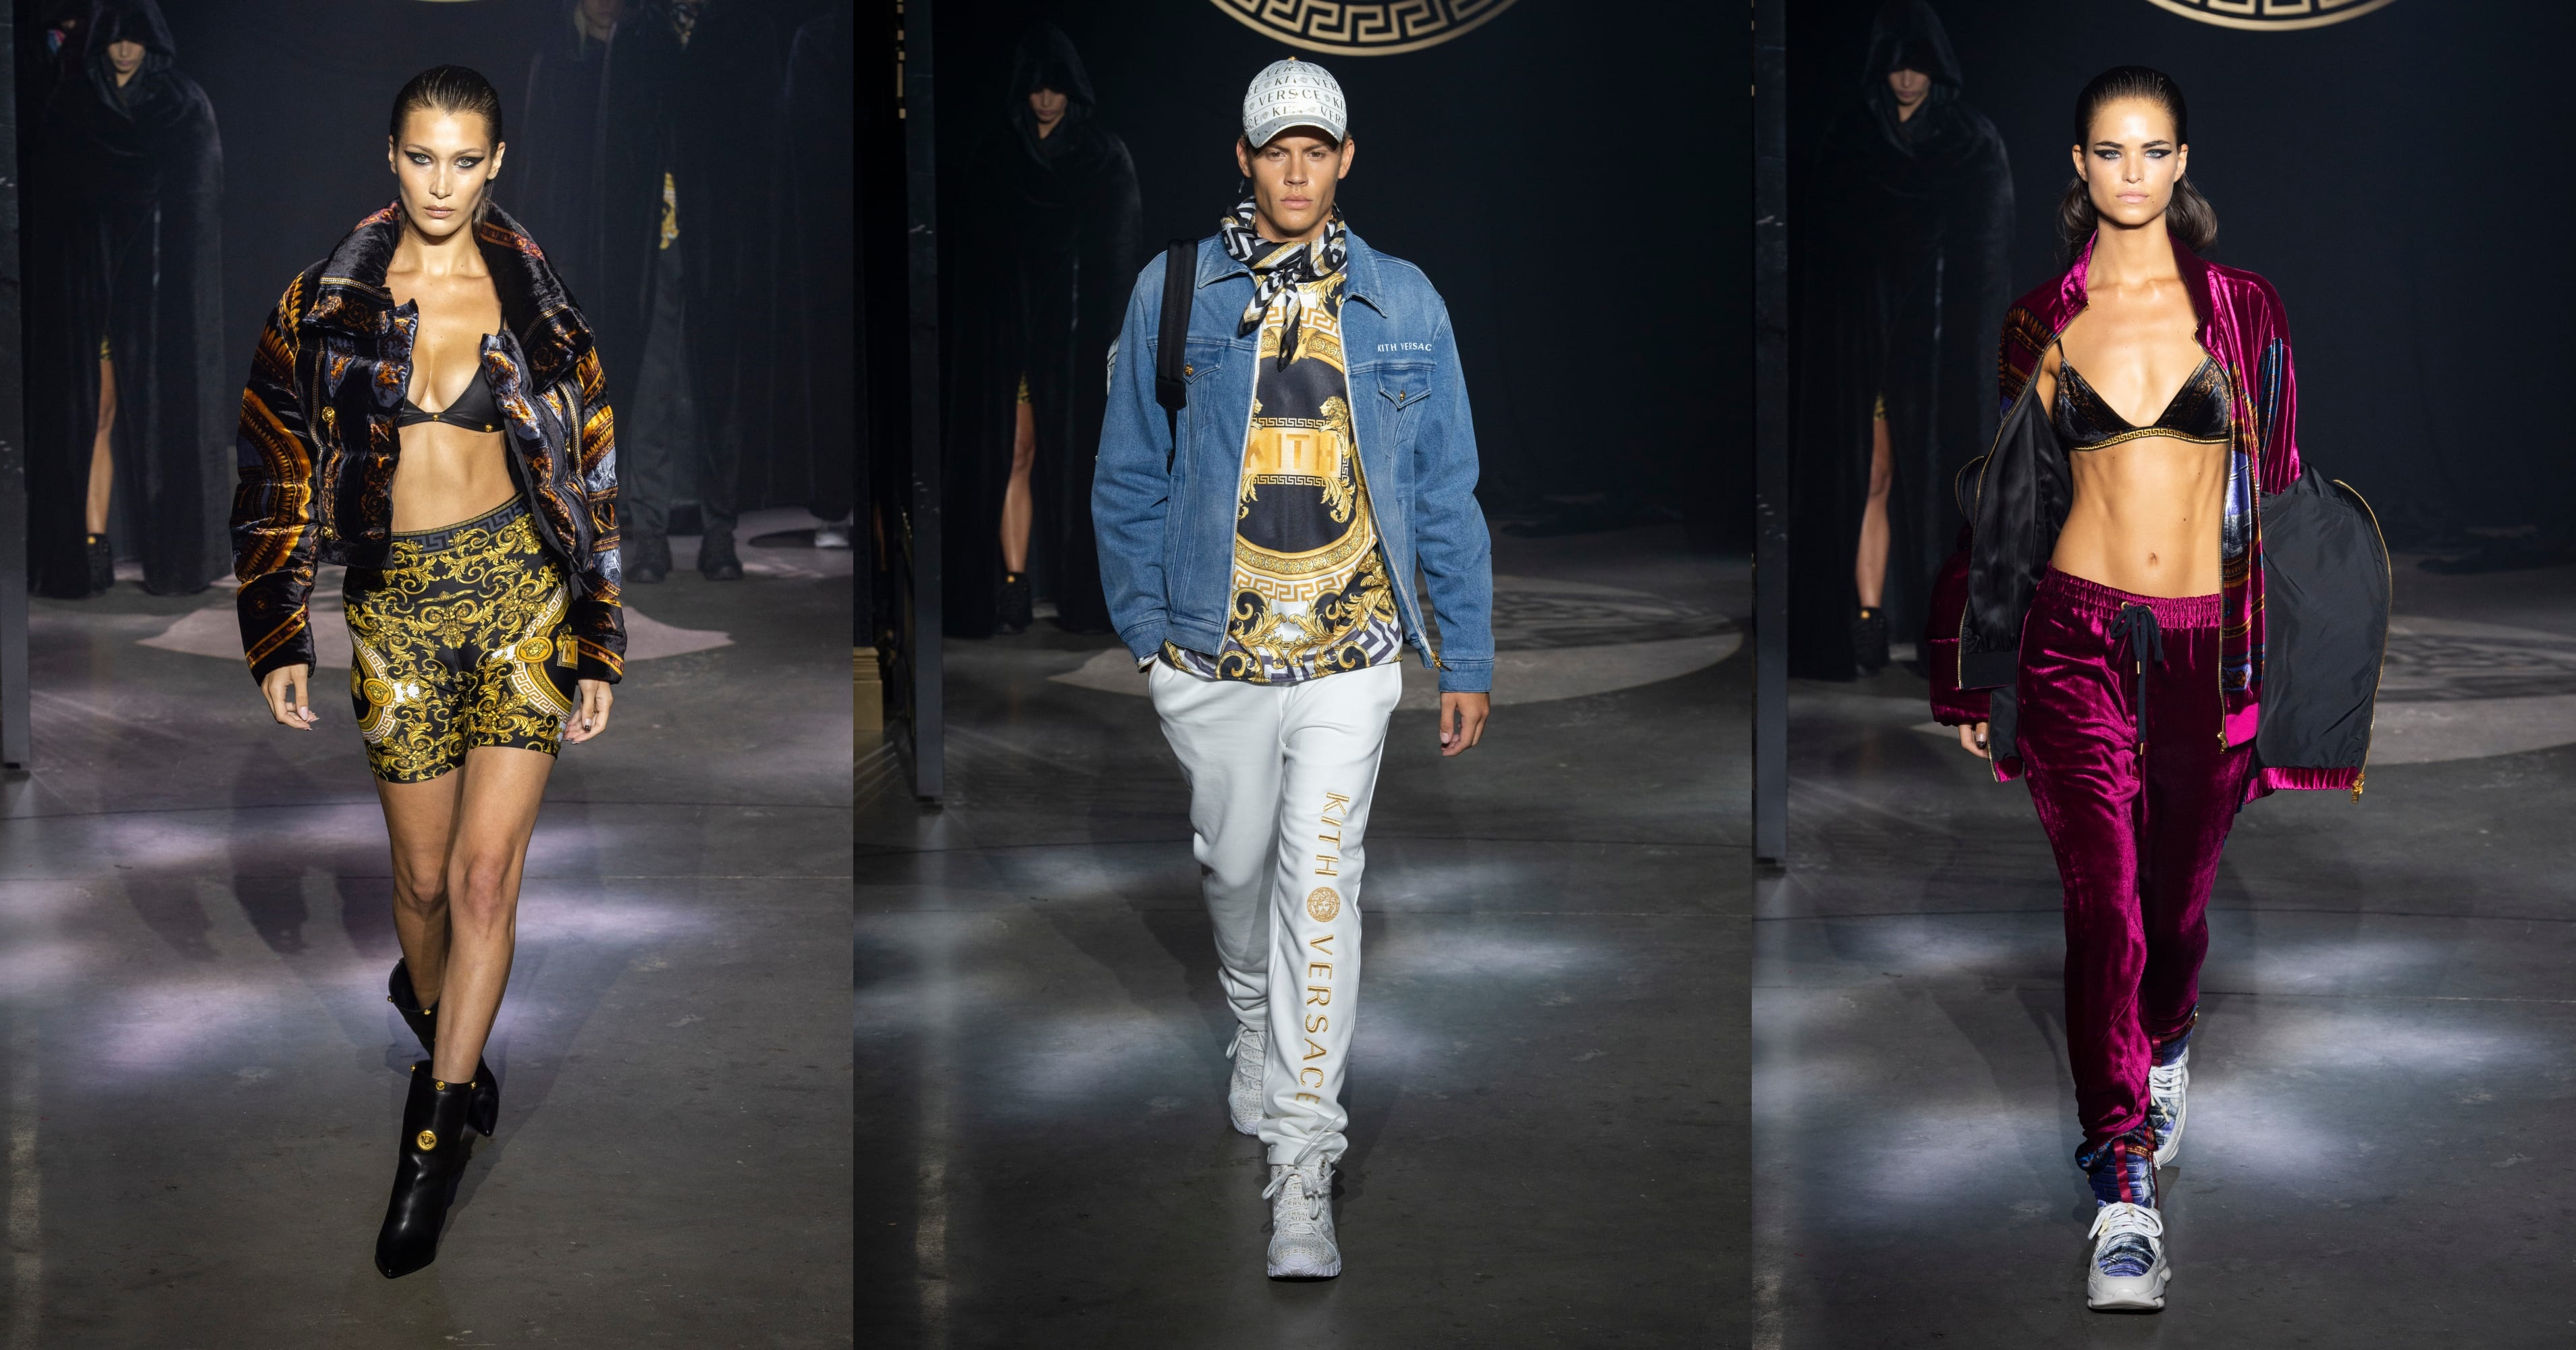 KITH and Versace Debut Their Collaborative Collection at NYFW